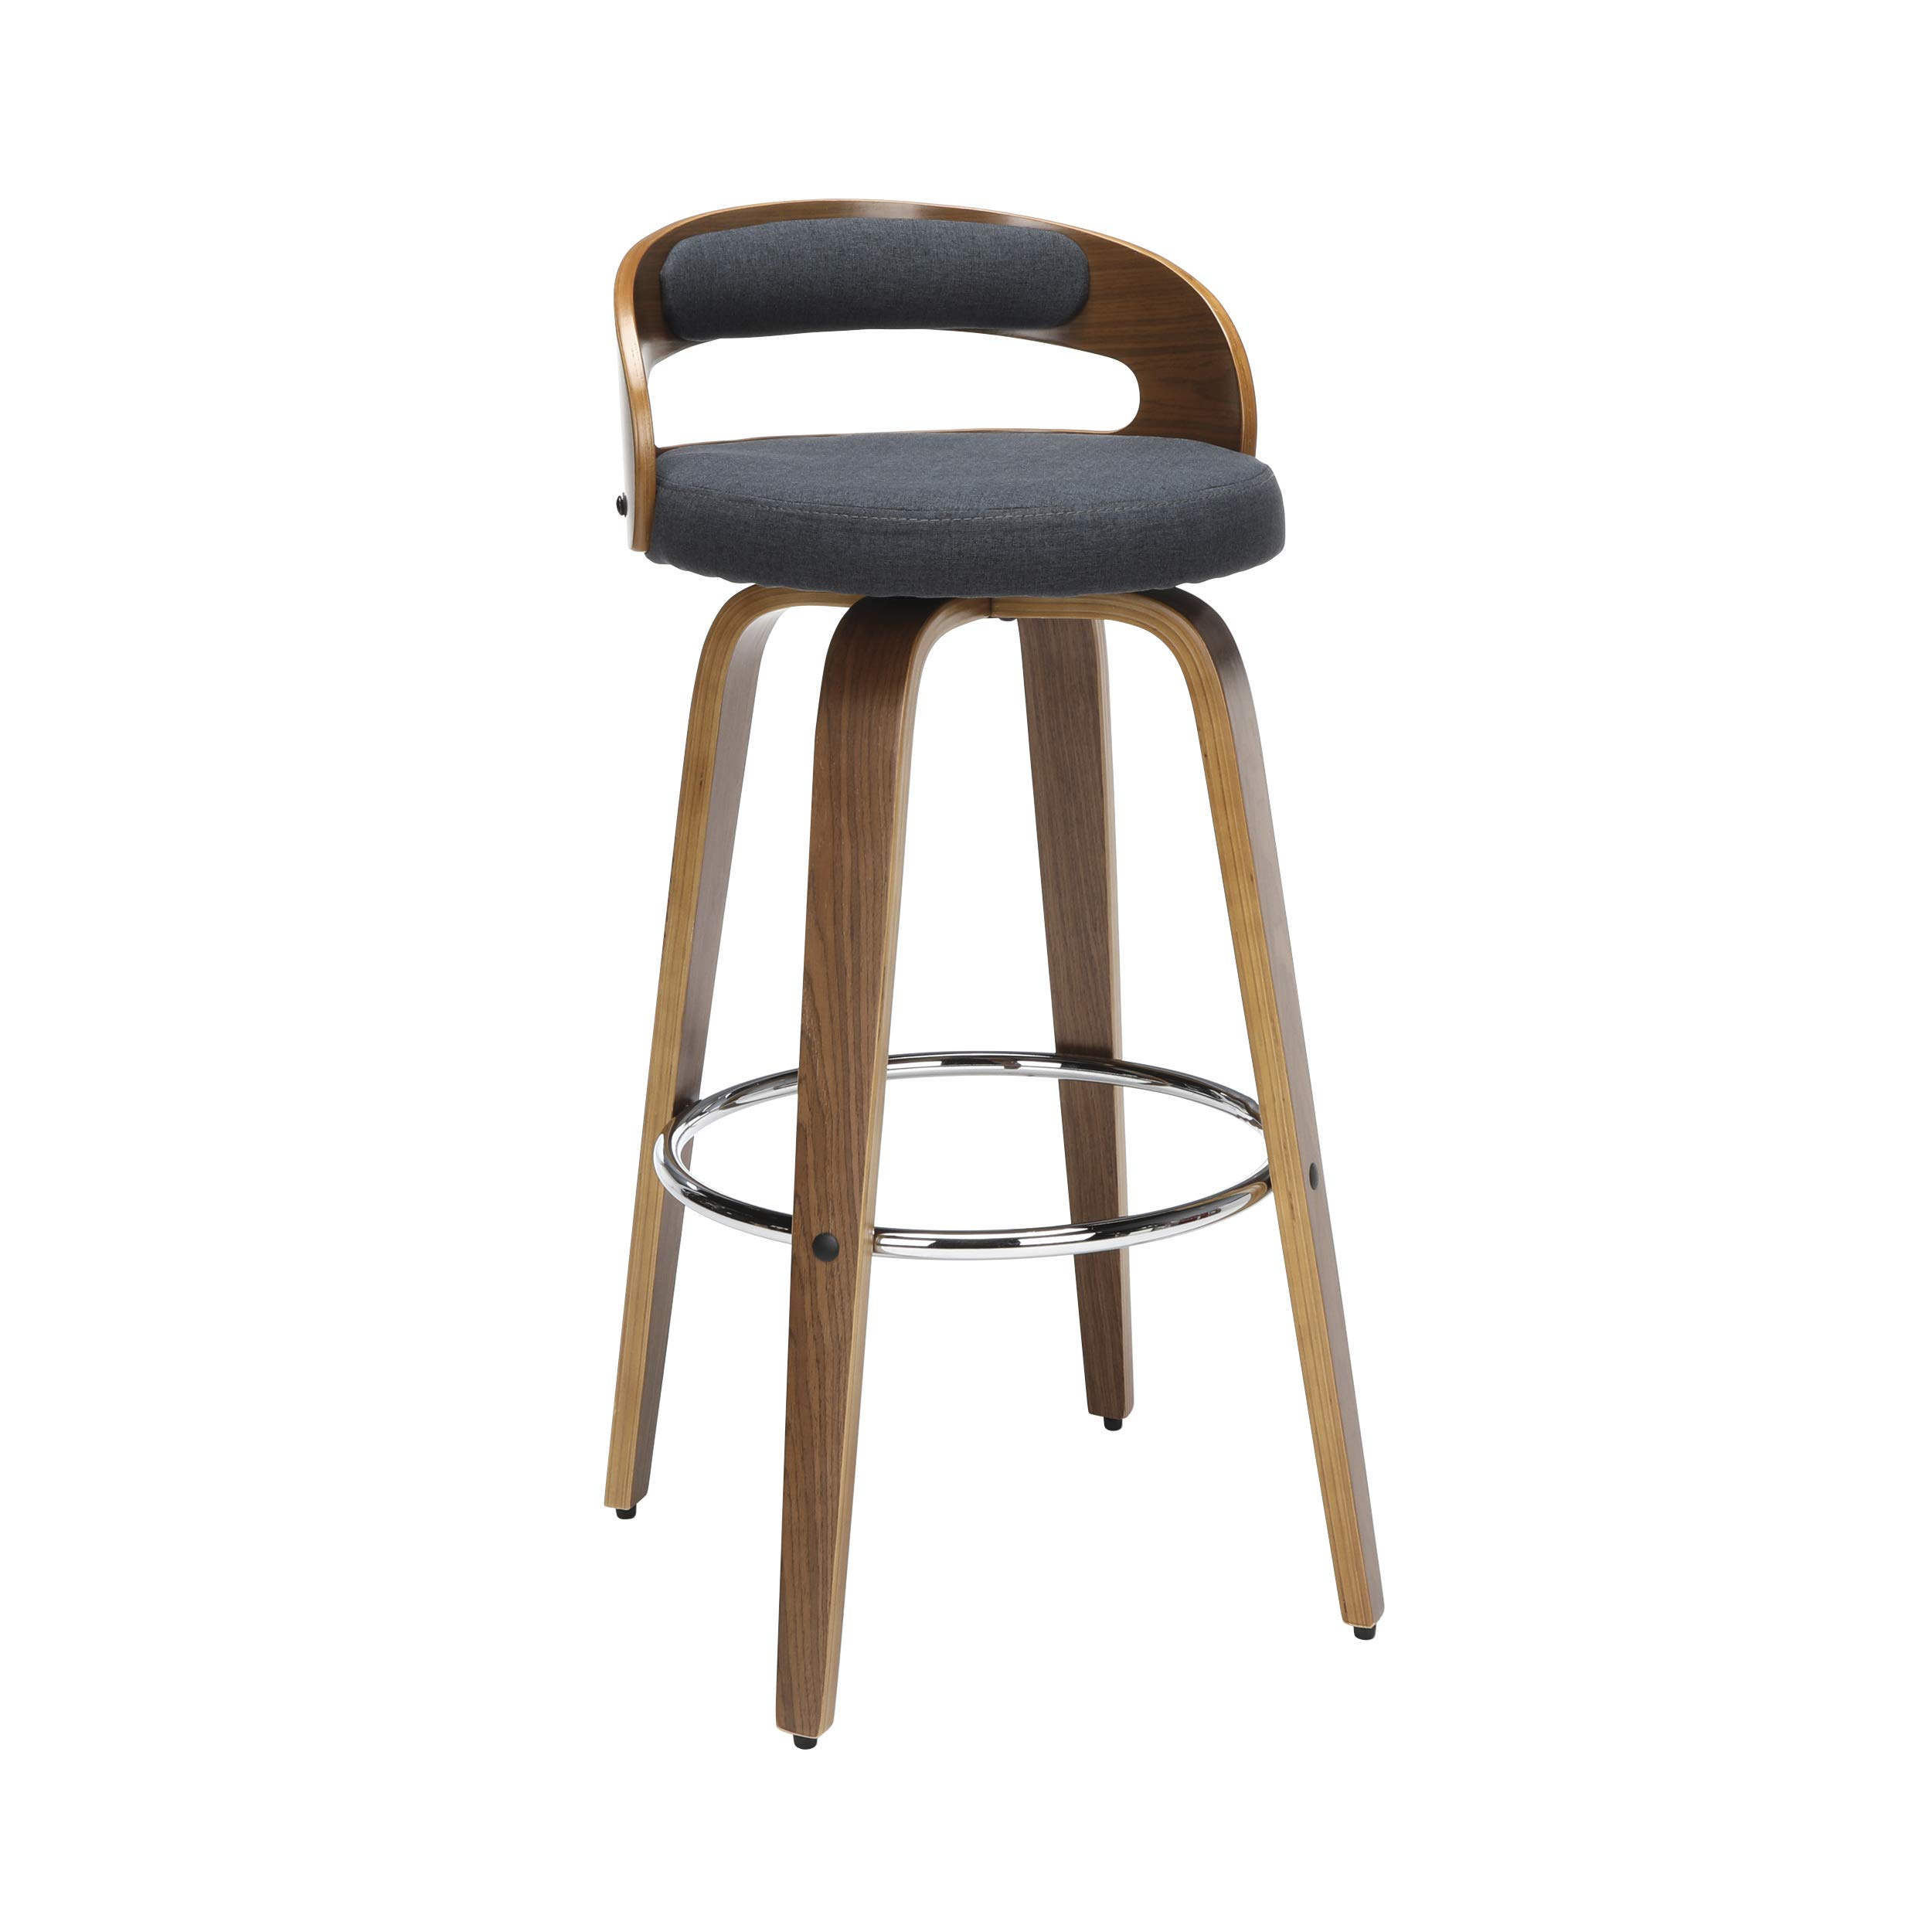 "OFM 161 Collection Mid Century Modern 30"" Low Back Bentwood Frame Swivel Seat Stool with Fabric Back and Seat Cushion, in Walnut/Navy (161-WF30C-NVY)"